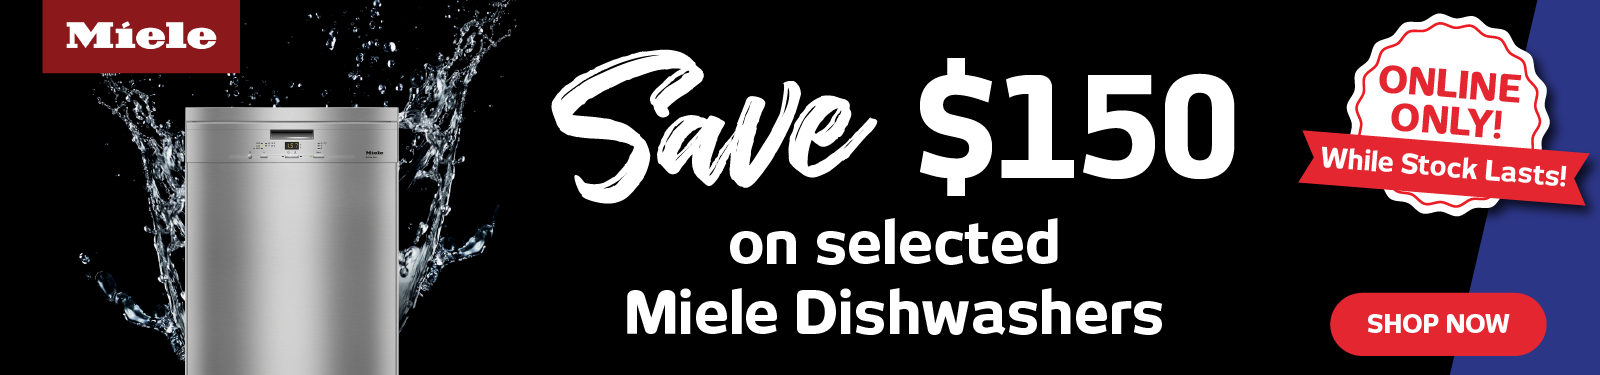 Save $150 On Selected Miele Dishwashers